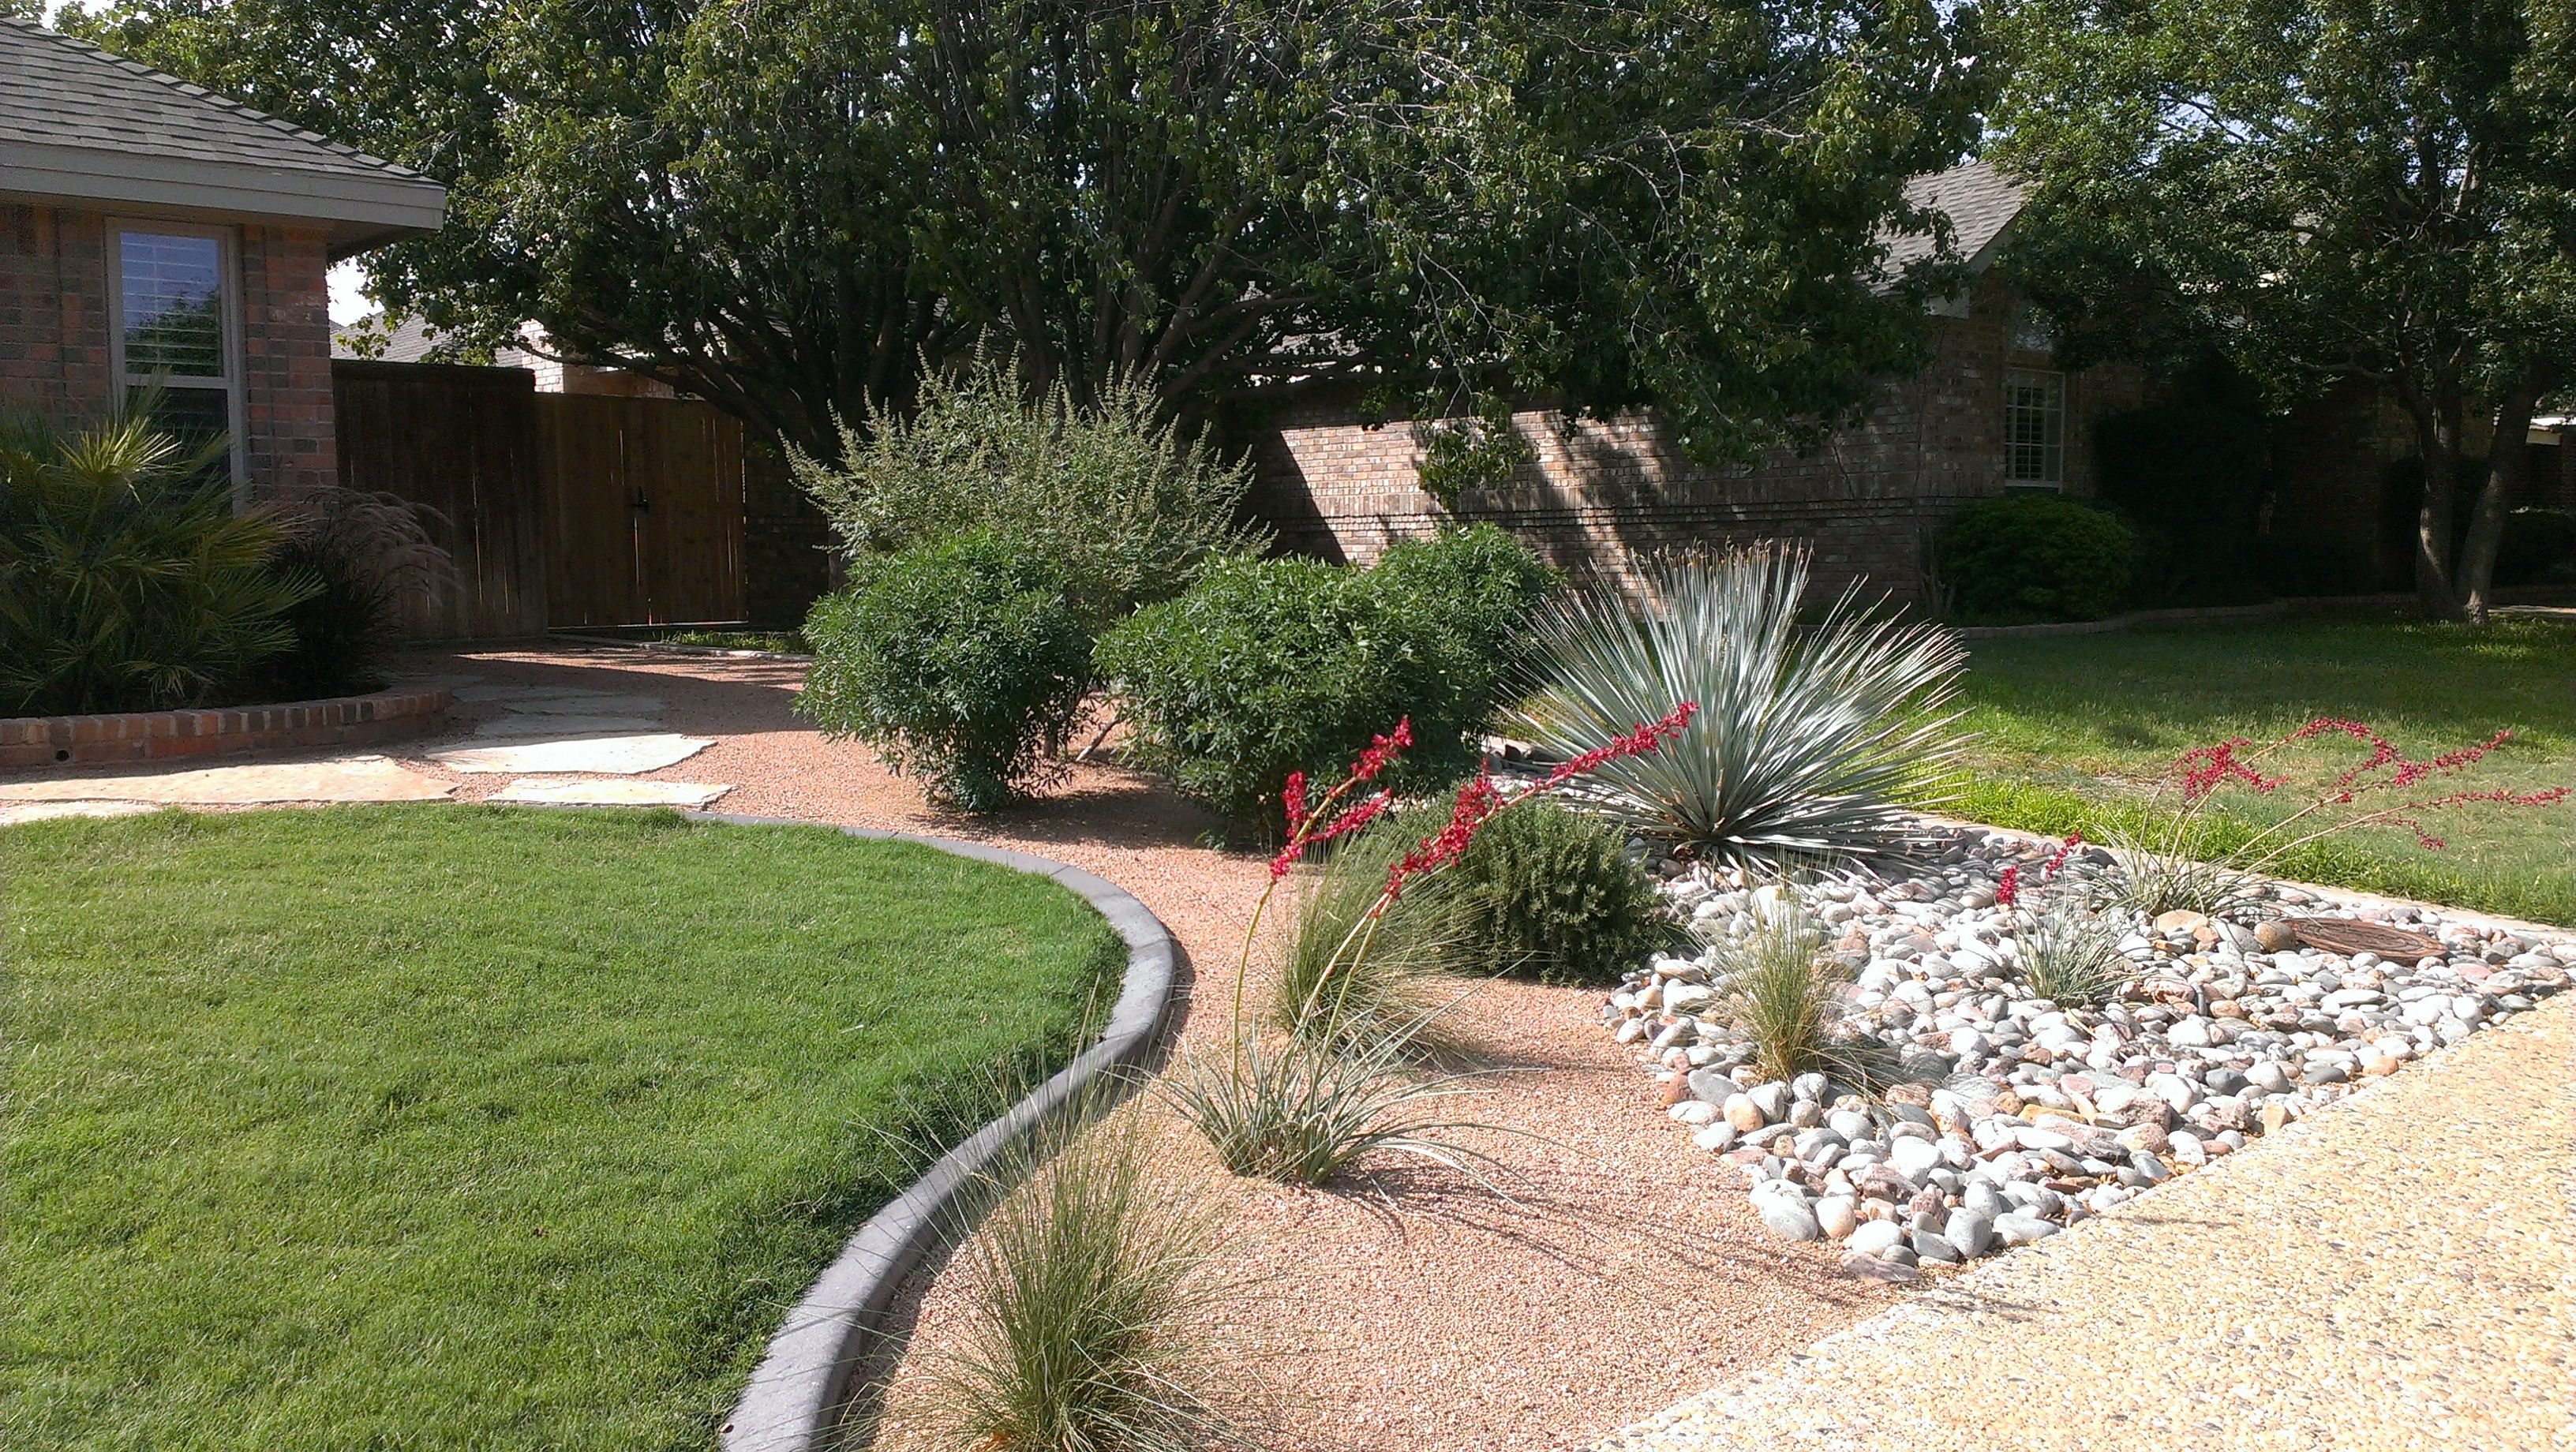 Garden Design With Low Water Landscape Ideas Agrilife Extension Sets Home Landscape With Front Yard Garde Garden Design Texas Landscaping Landscaping Programs